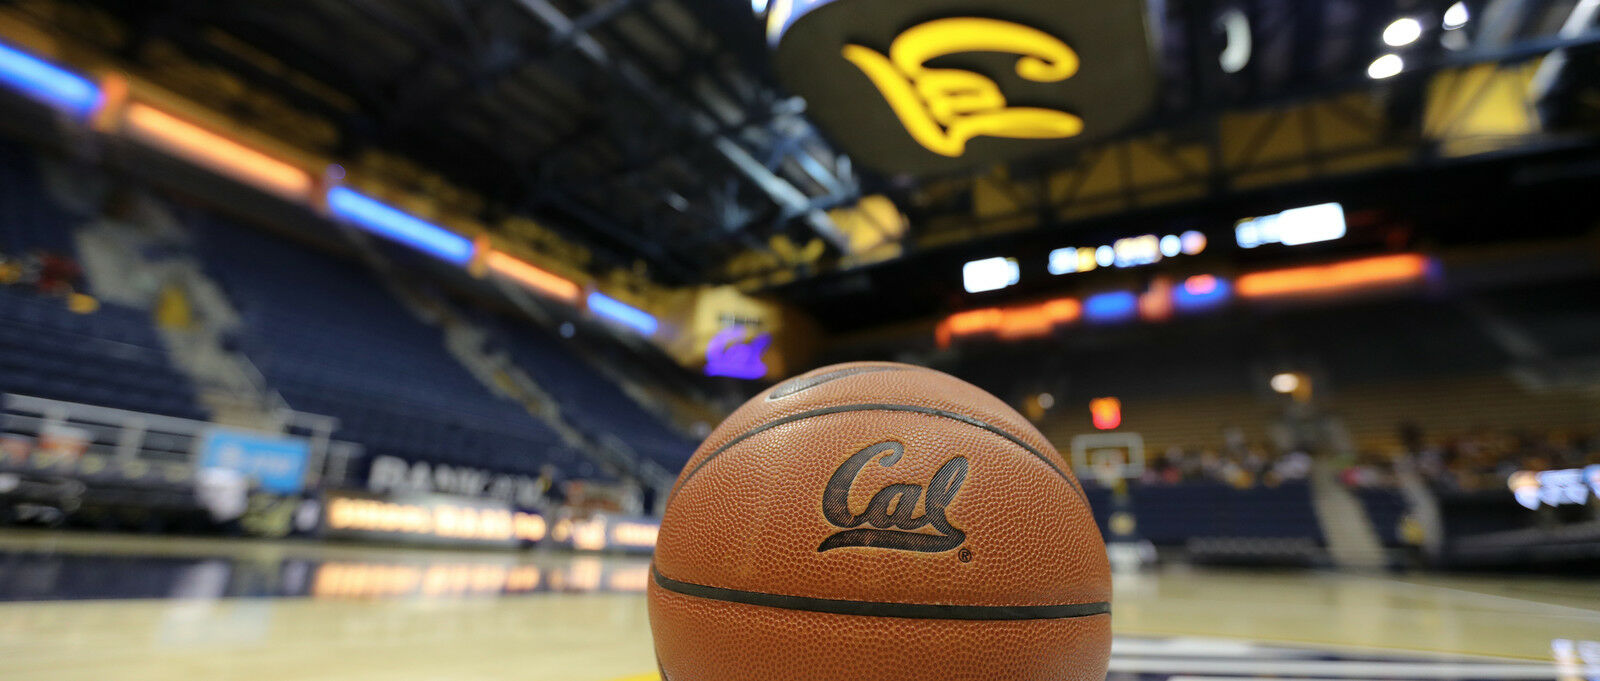 Stanford Cardinal at Cal Bears Women's Basketball